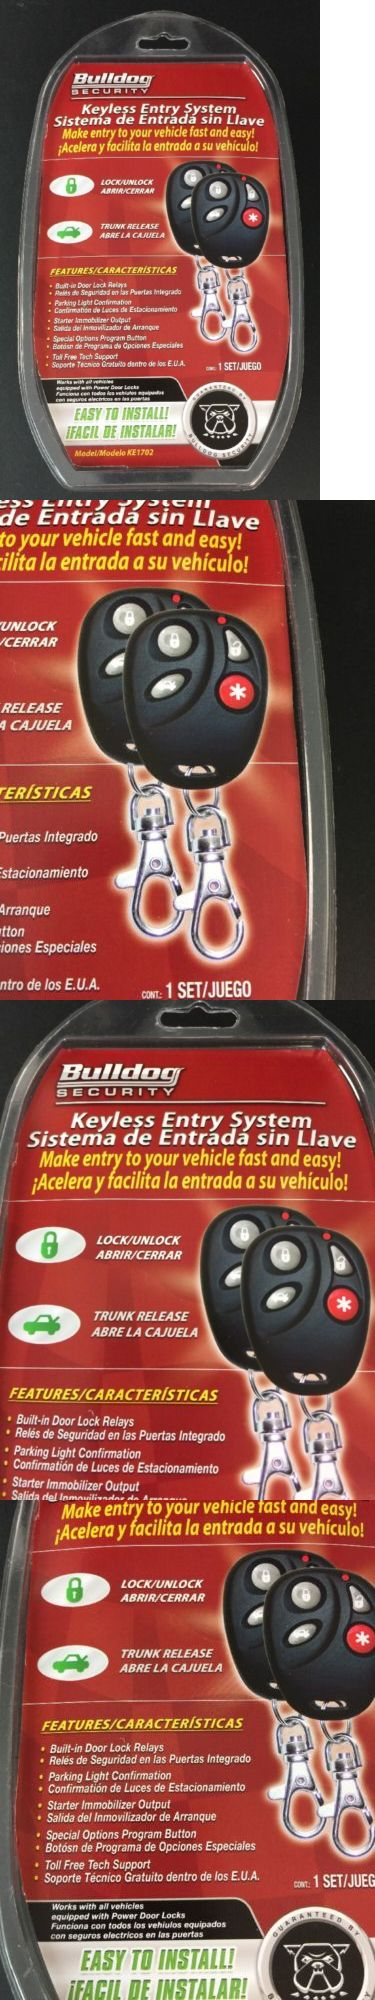 Remote Start and Entry Systems: Bulldog Security Ke1702 Vehicle Keyless Entry System Car Auto Remote Lock New F4 -> BUY IT NOW ONLY: $33.94 on eBay!